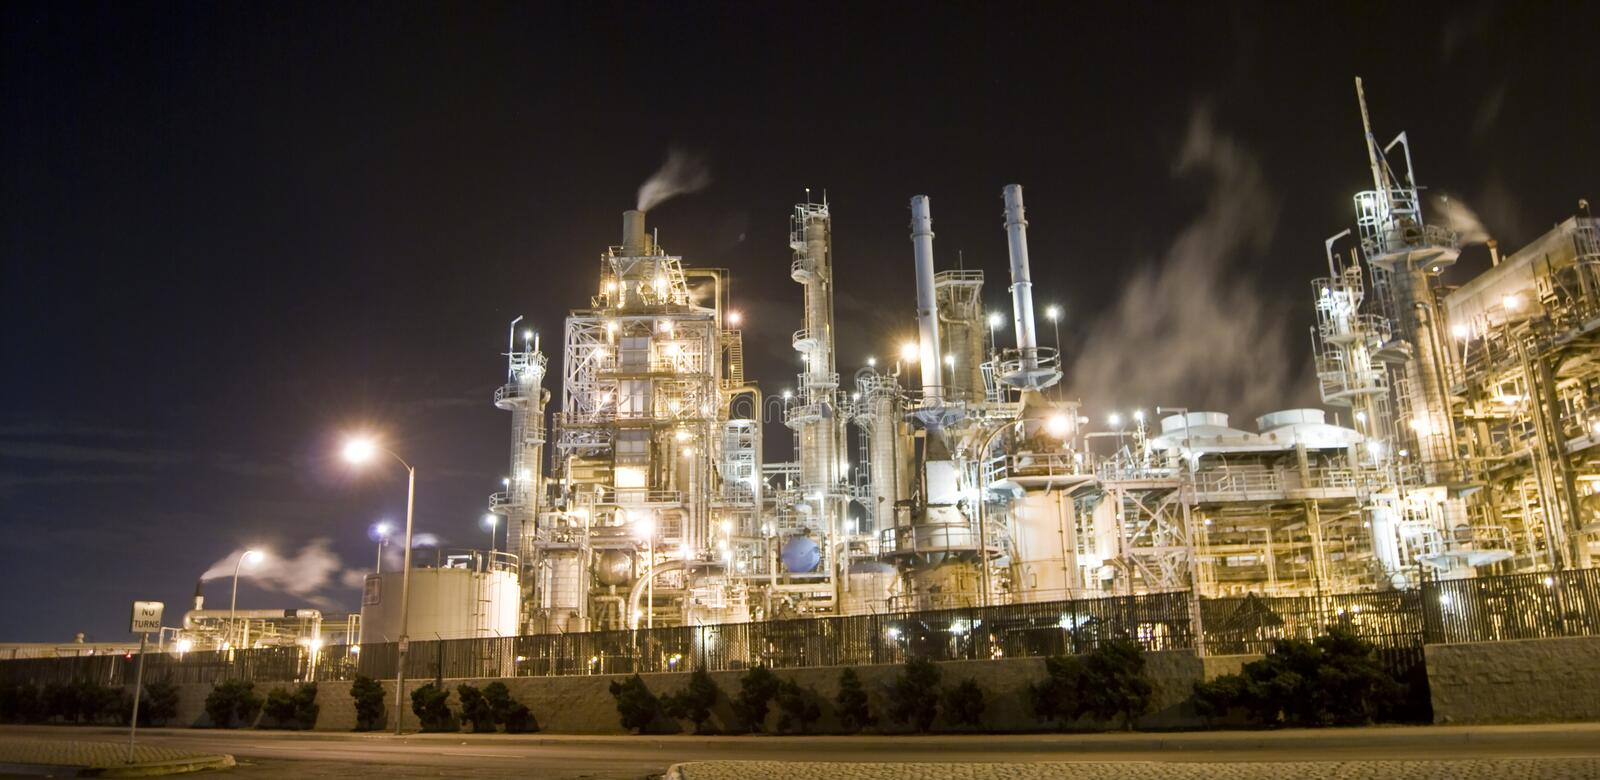 Oil refinery and industry stock photo